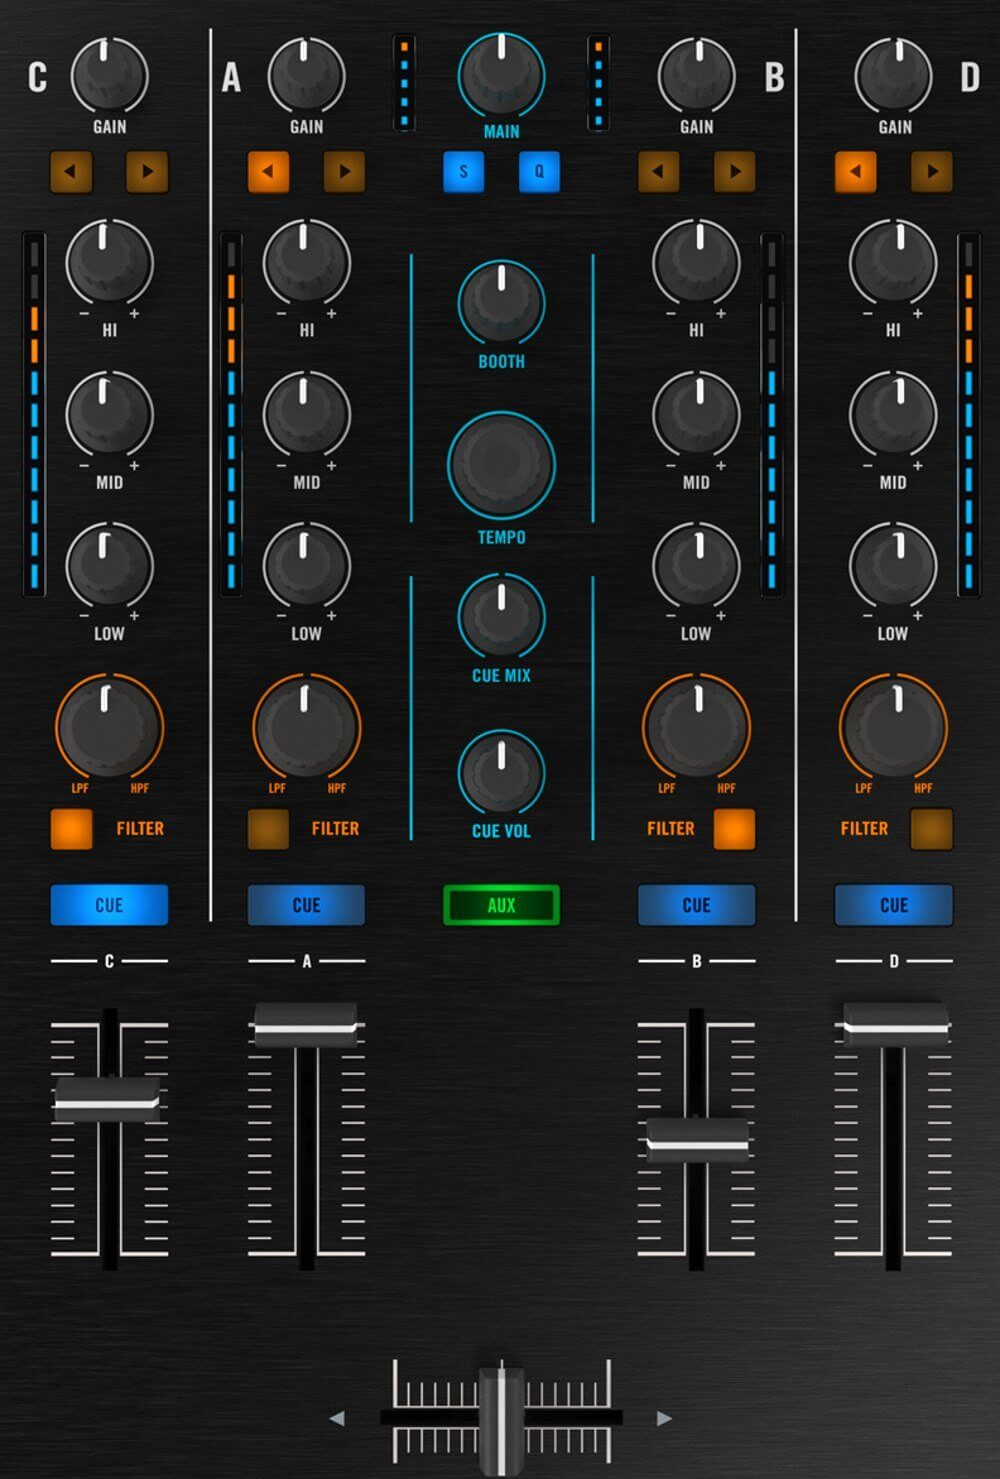 Native Instruments Traktor Kontrol S5 mixer section.